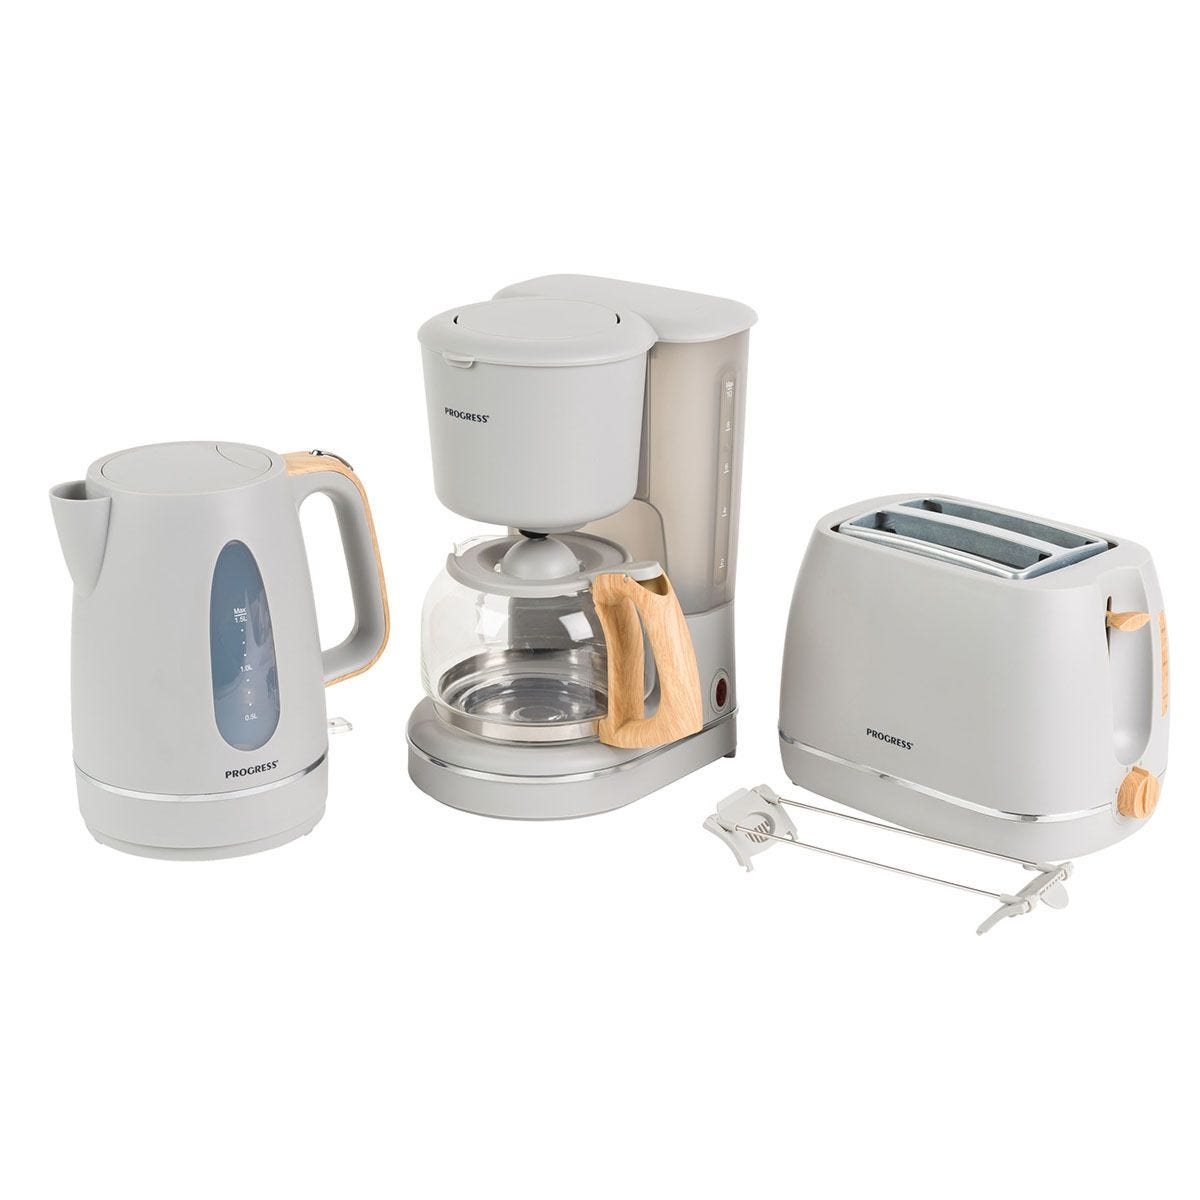 Progress® COMBO–5151 Scandi 2–Slice Toaster, 1.25L Coffee Maker, and 1.7L Jug Kettle – Grey with Wood Effect Finish